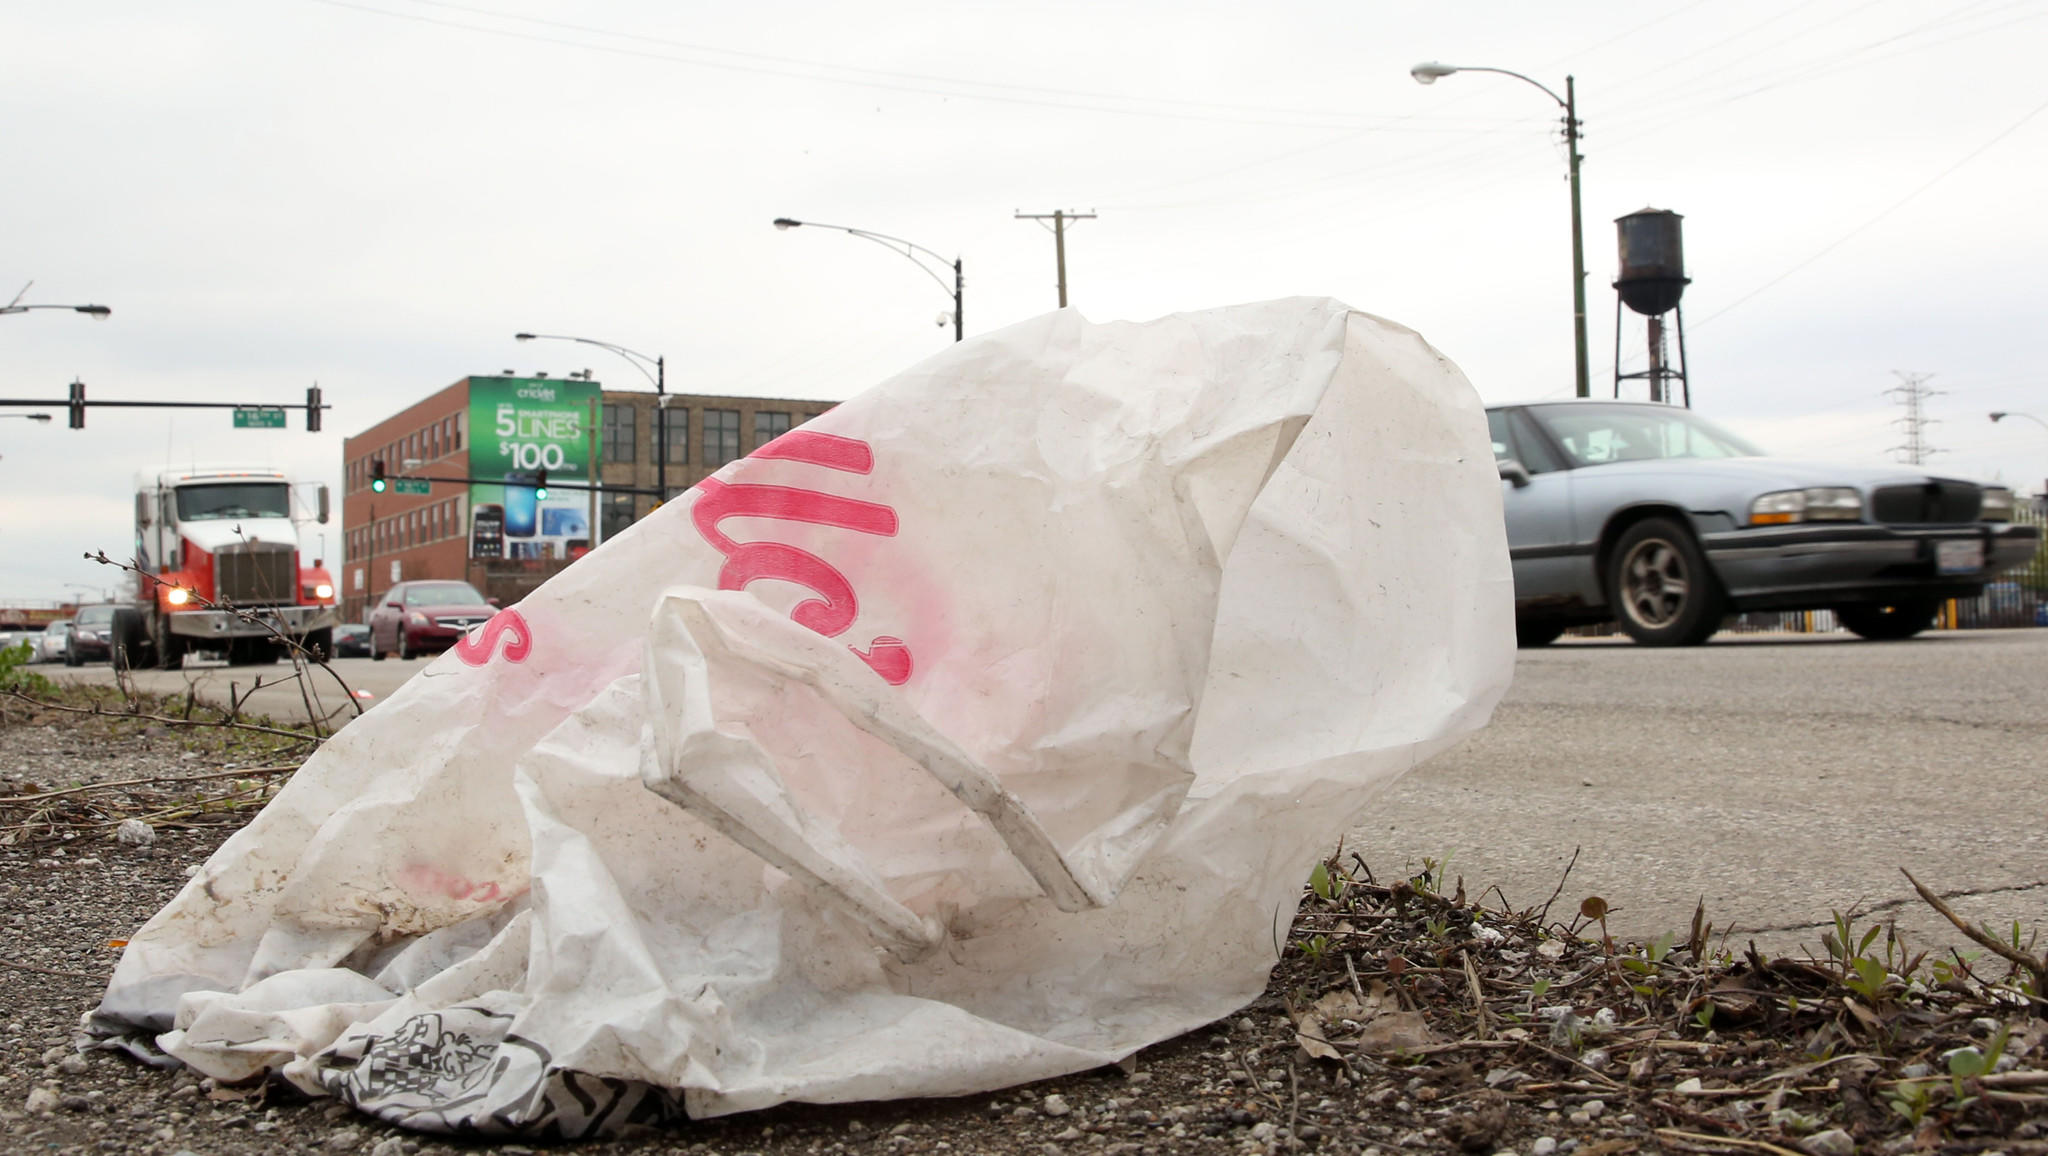 Plastic bag ban chicago - A Plastic Shopping Bag Lies Along The Road As Traffic Rolls Northbound On Western Ave